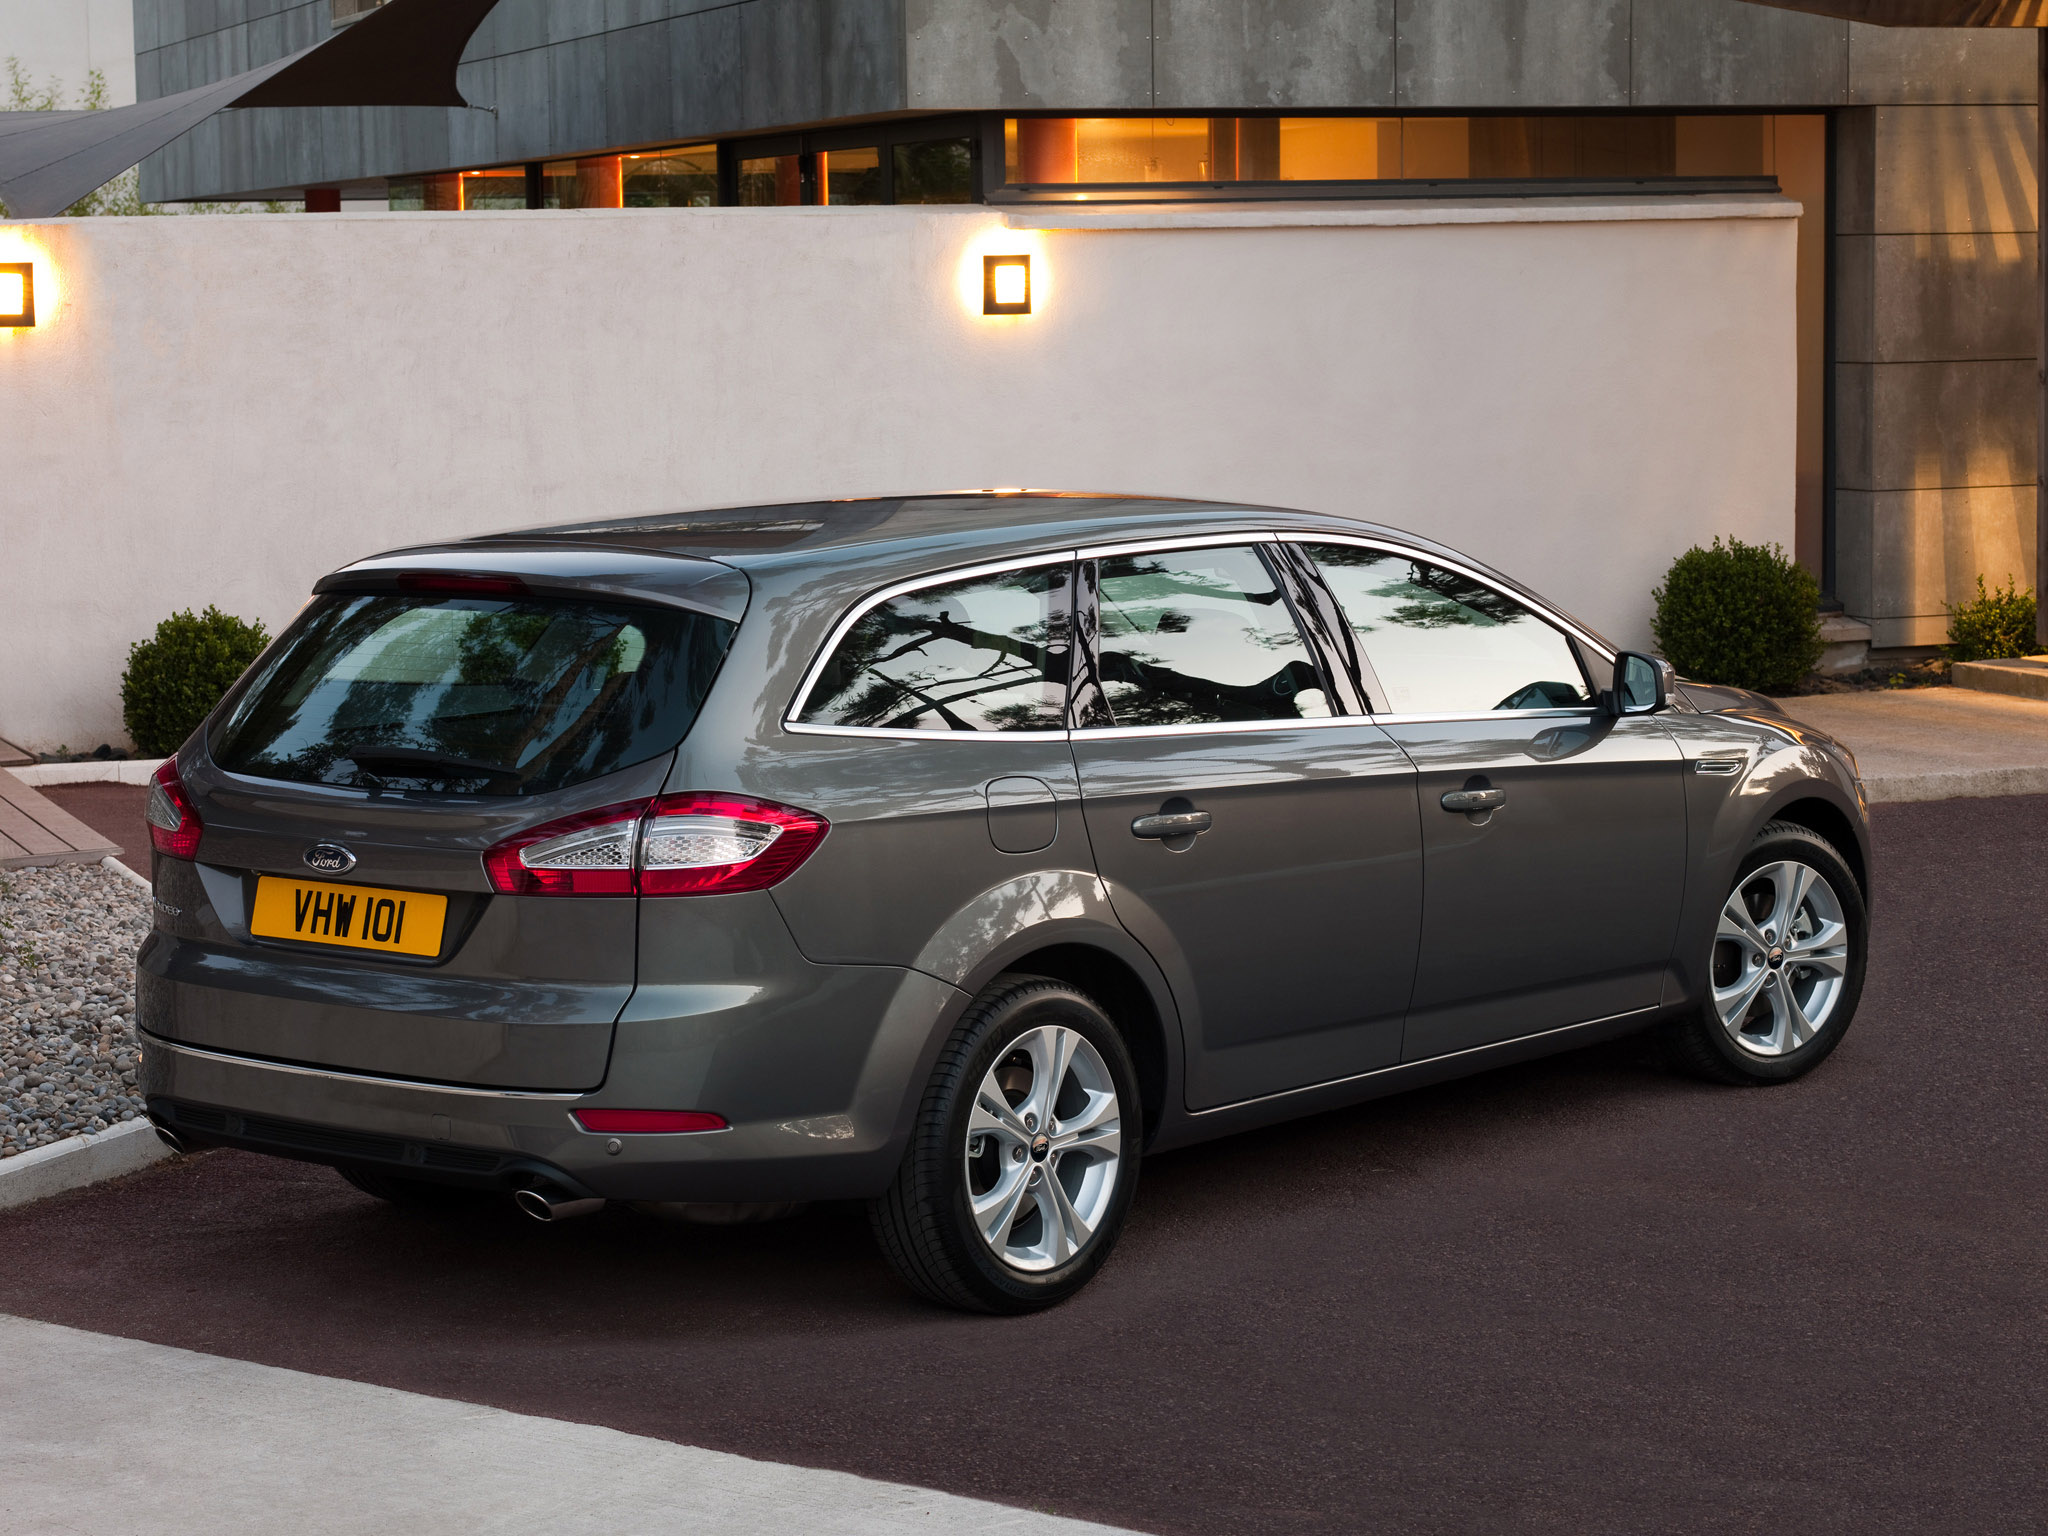 ford mondeo turnier 2010 ford mondeo turnier 2010 photo 08 car in pictures car photo gallery. Black Bedroom Furniture Sets. Home Design Ideas